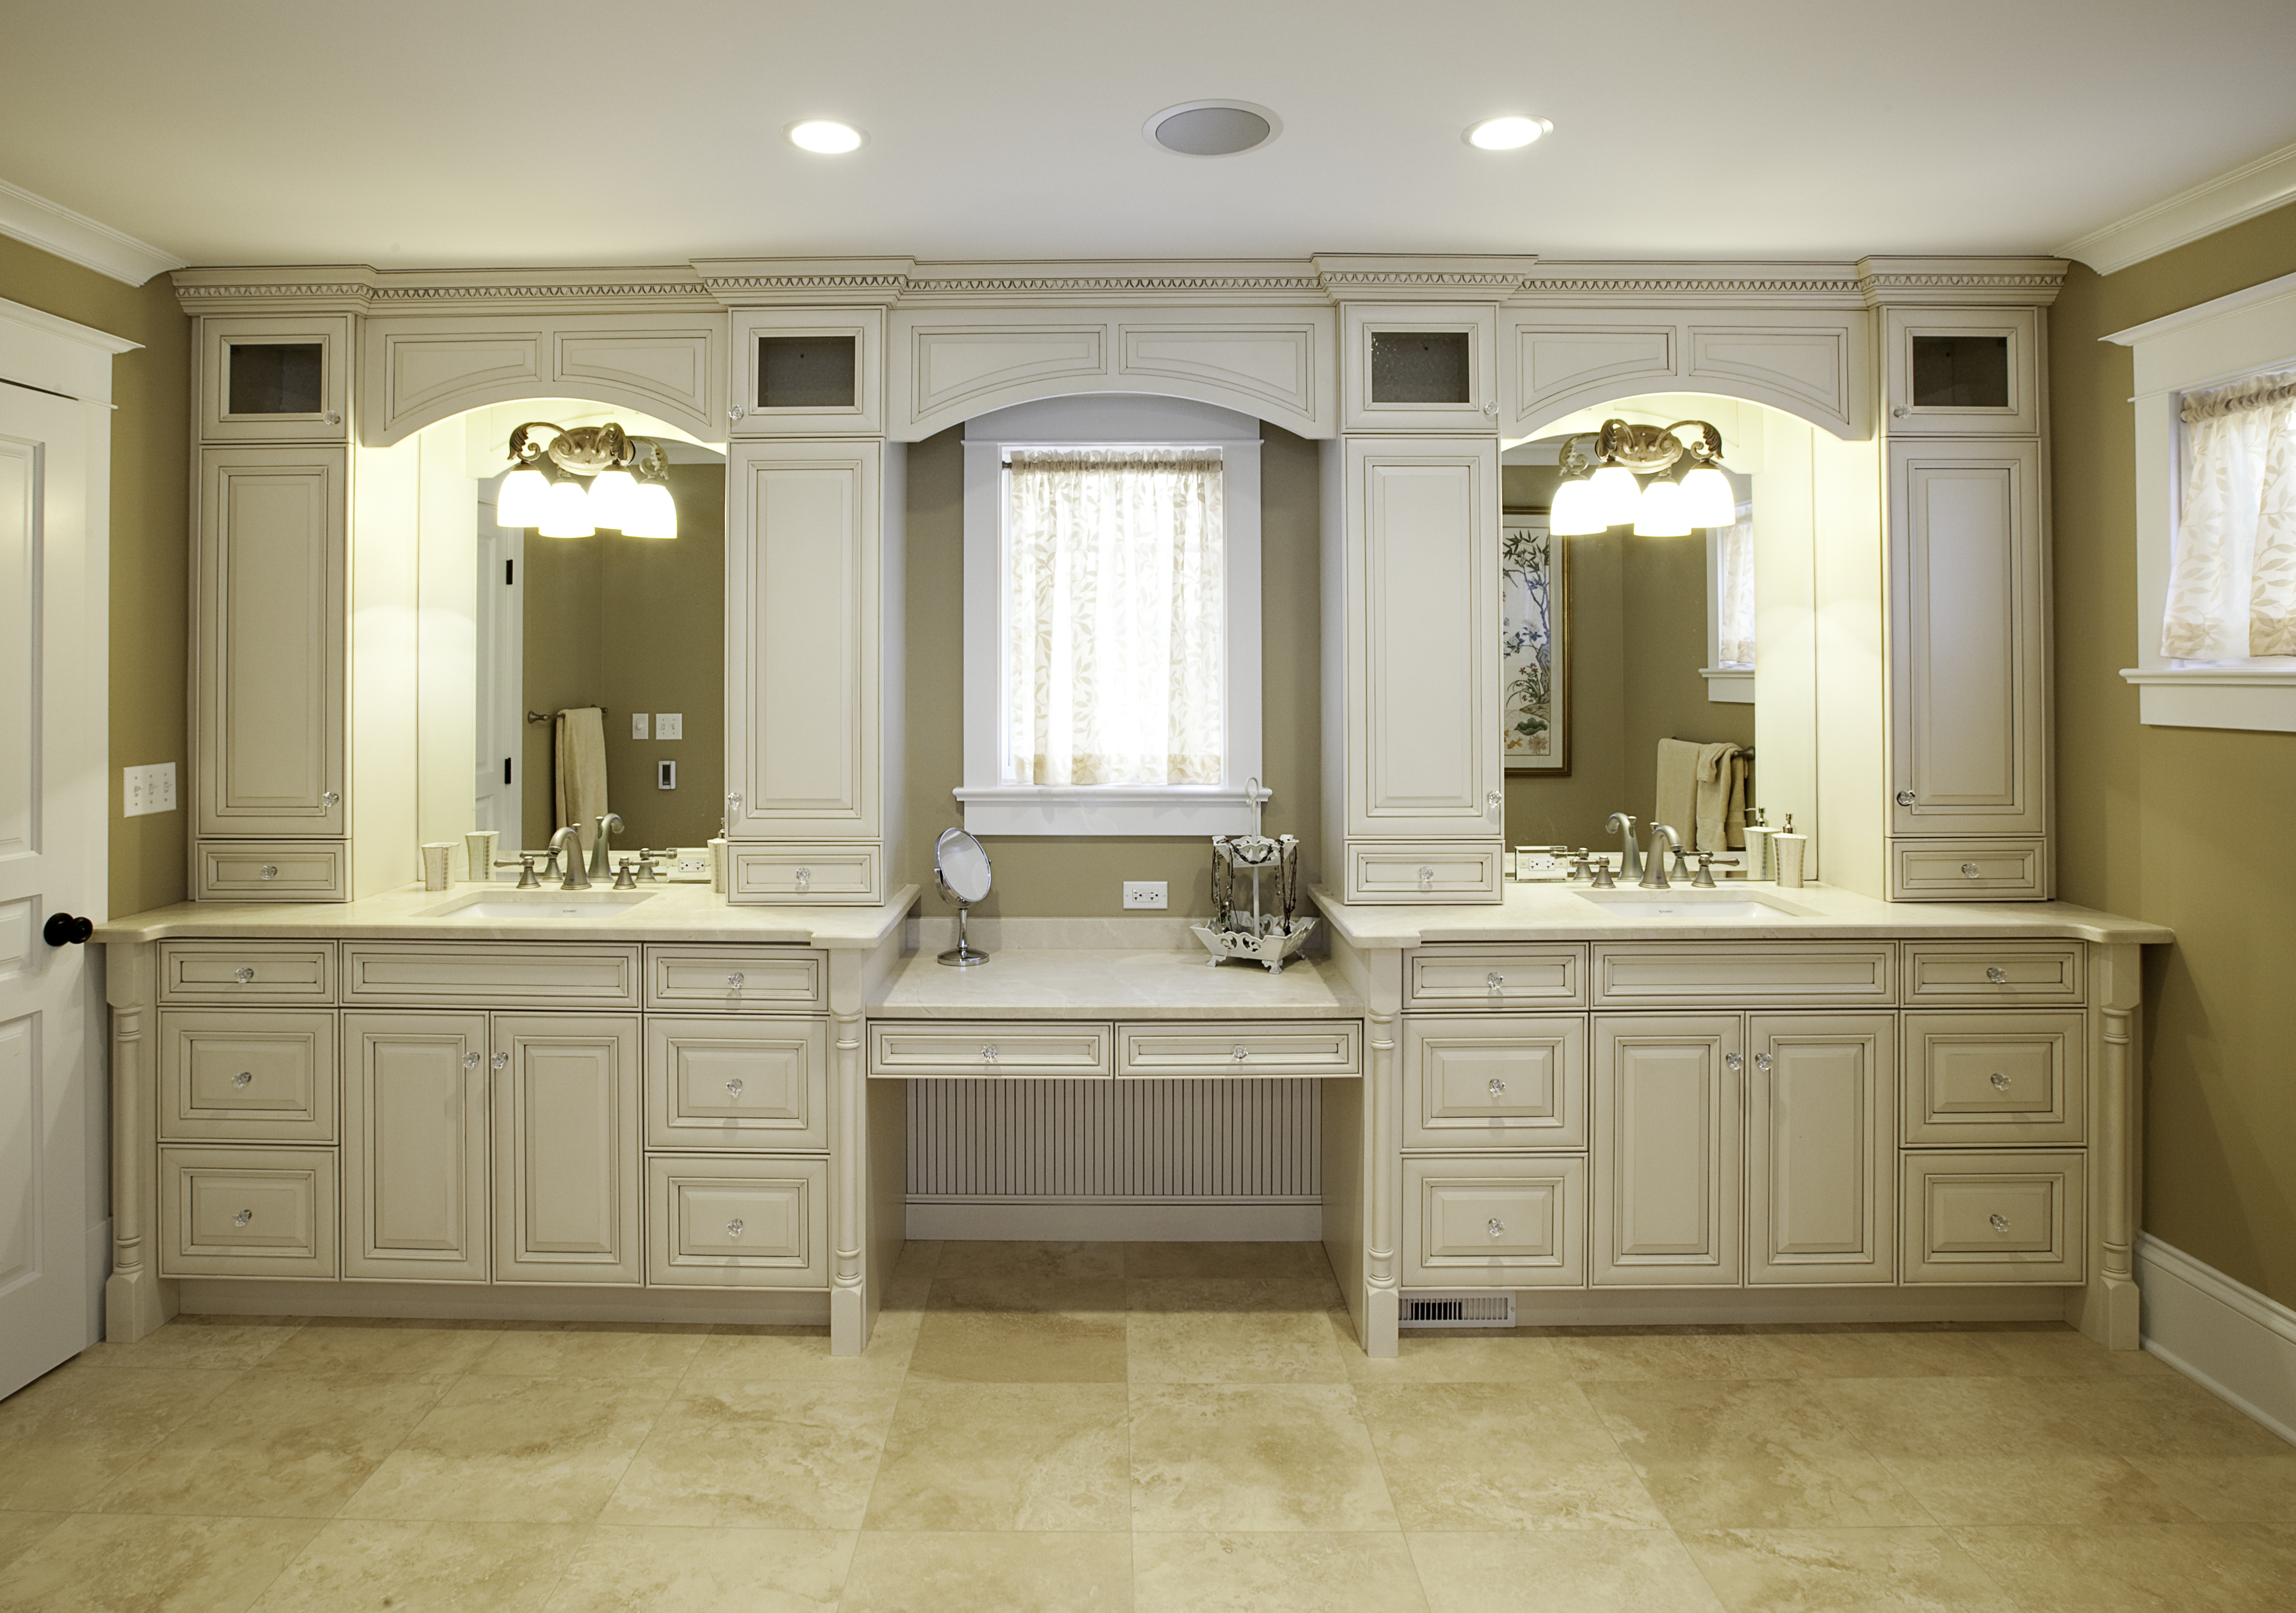 Kitchen Cabinets As Bathroom Vanity